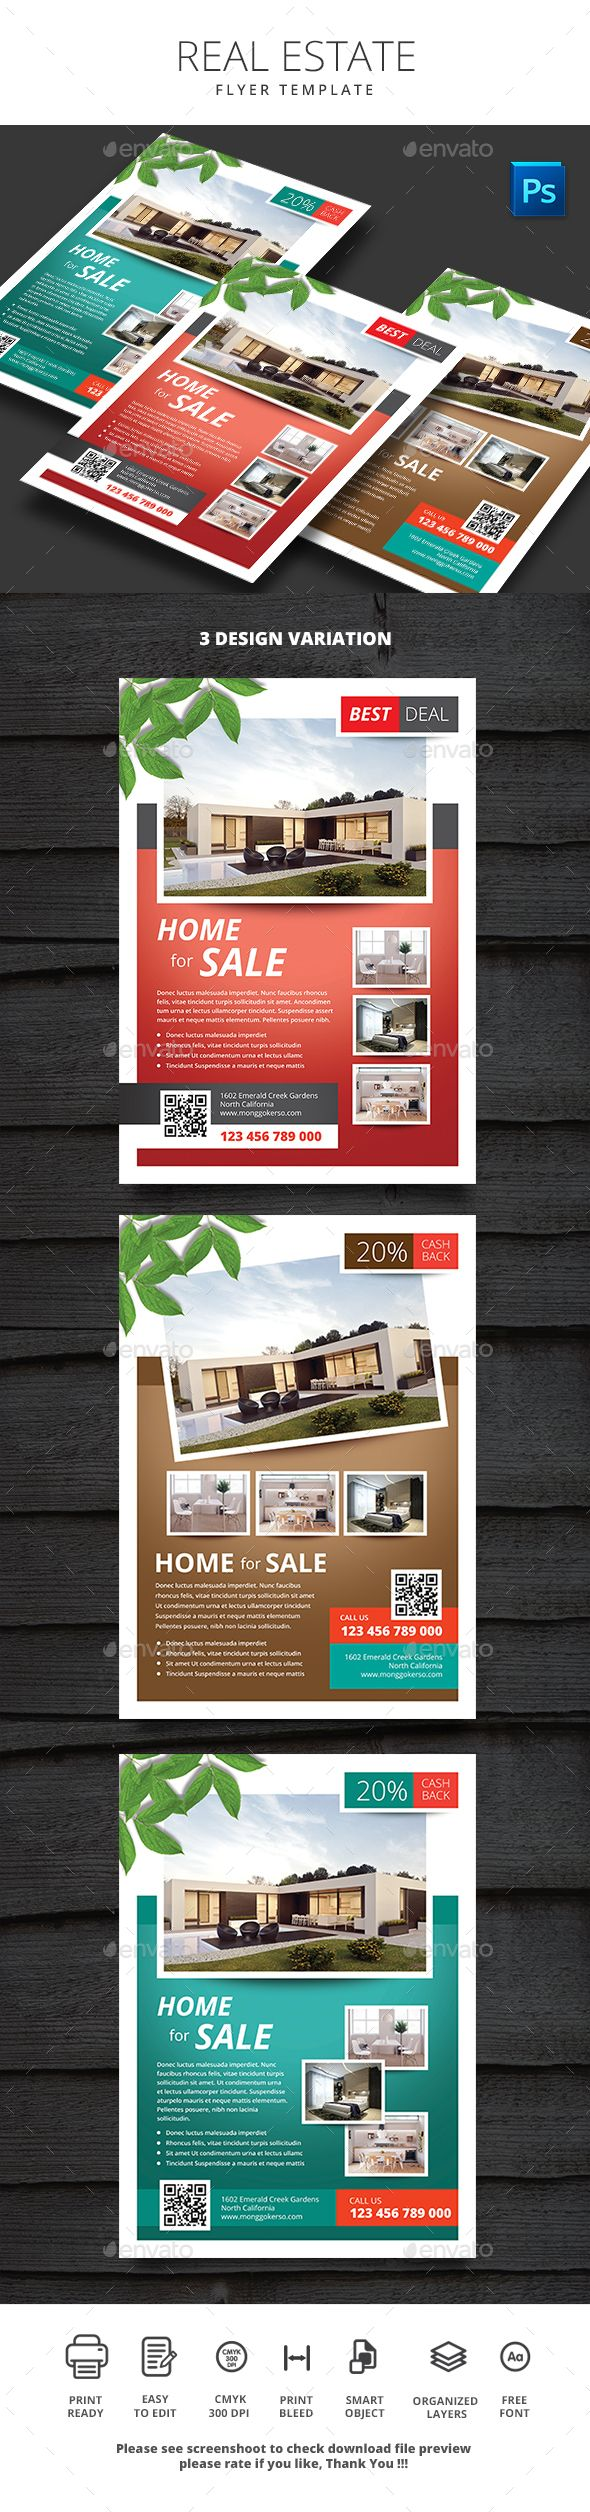 1000 ideas about real estate flyers dfw real templates flyer templates template psd print templates real psd item real flyers print real estate flyers